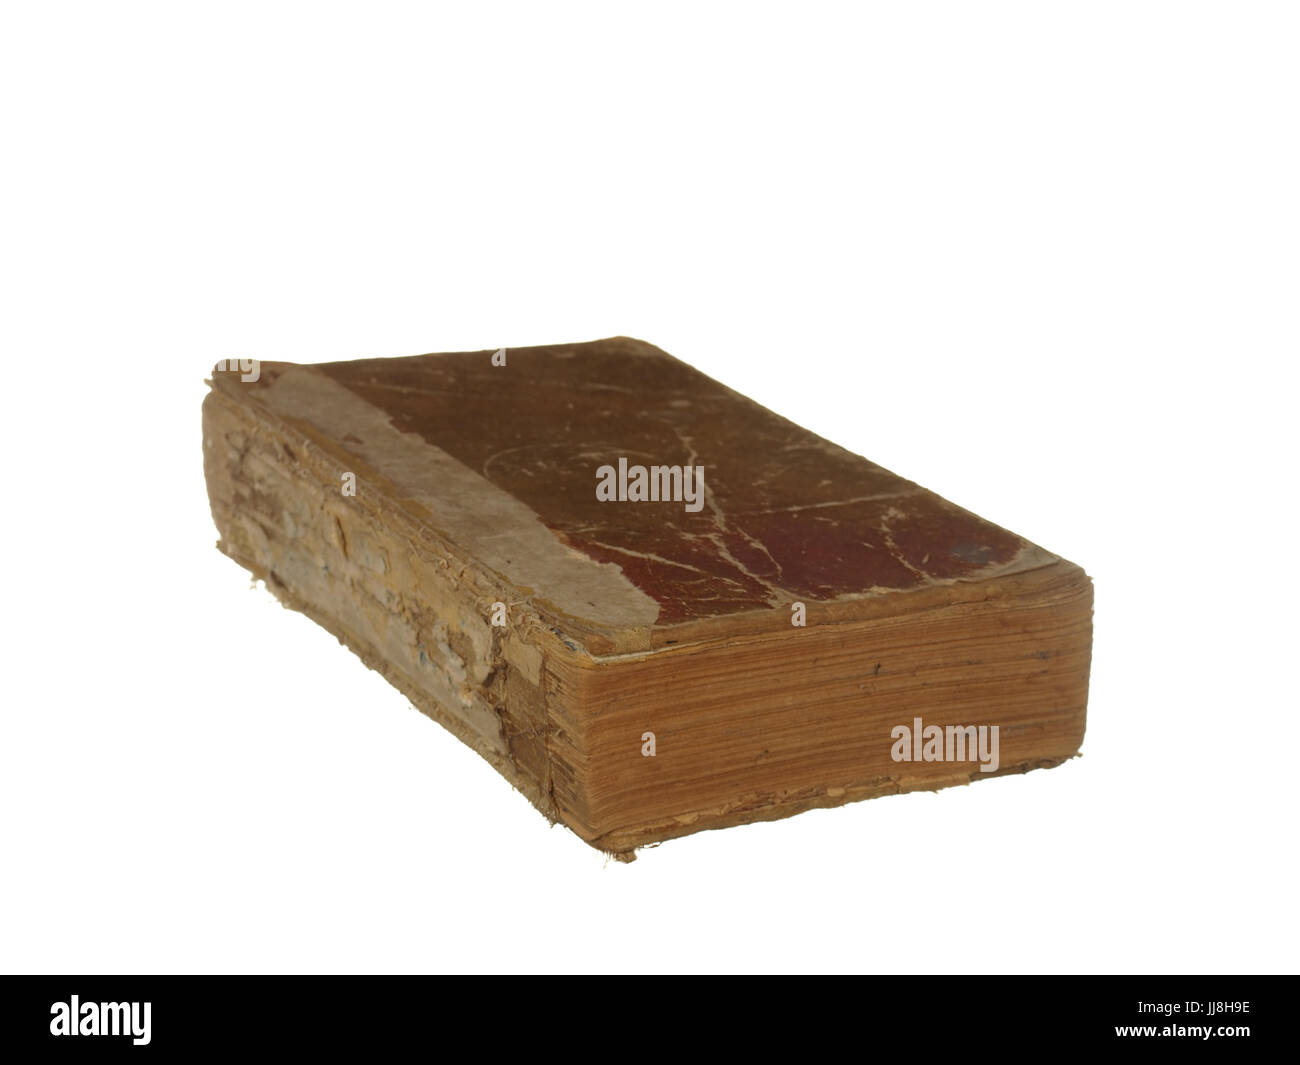 Very old and worn book isolated on white background. Stock Photo